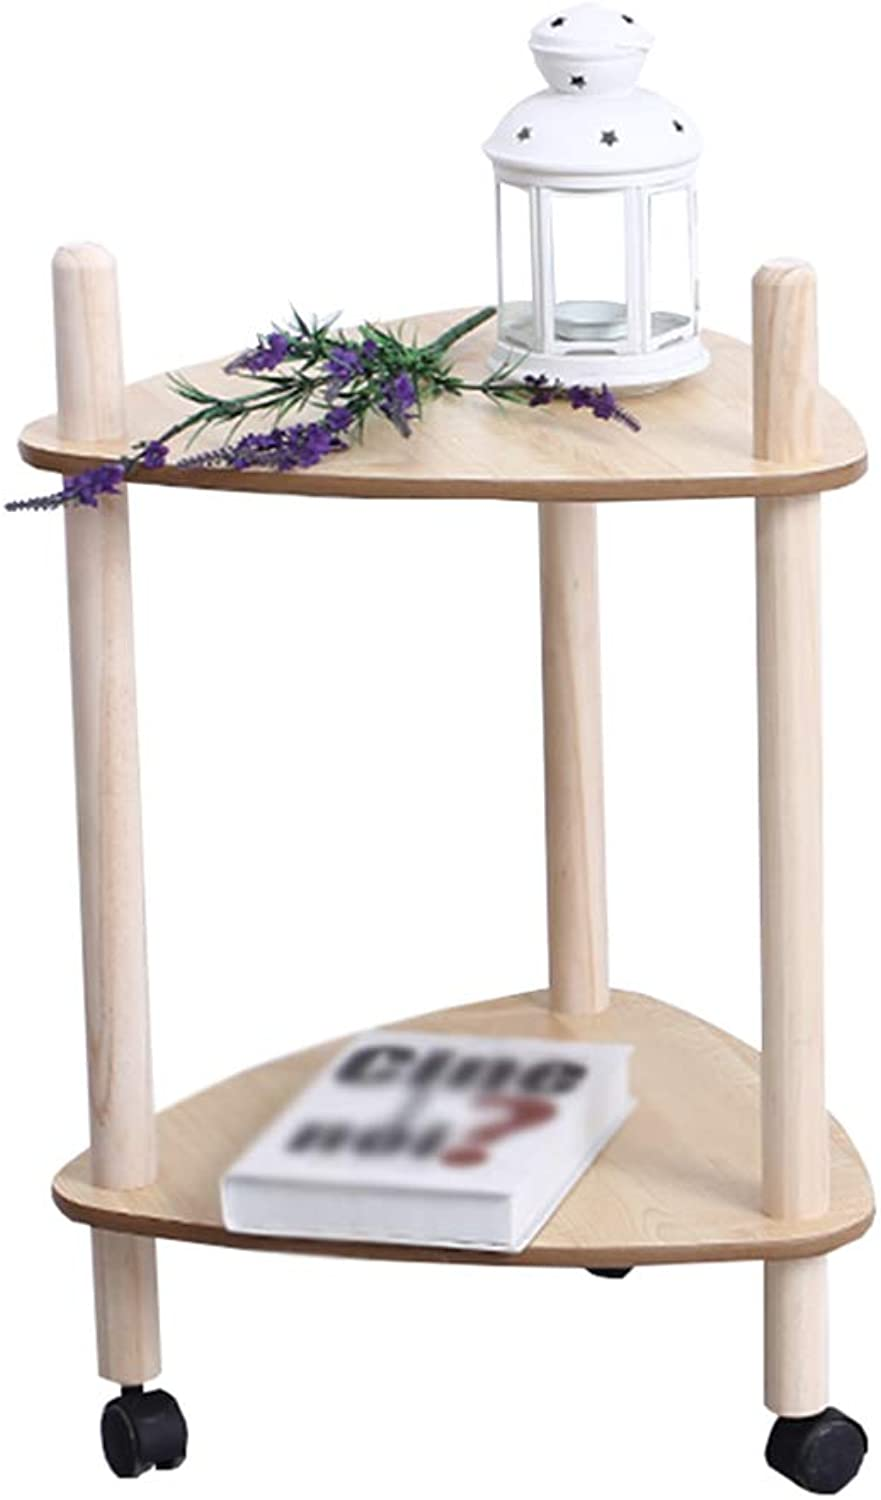 Chunlan Folding table Nordic It Can Move Tea Table Small Cart Dining Car Home Living Room Multifunction Shelves (Size   44.5  68cm)